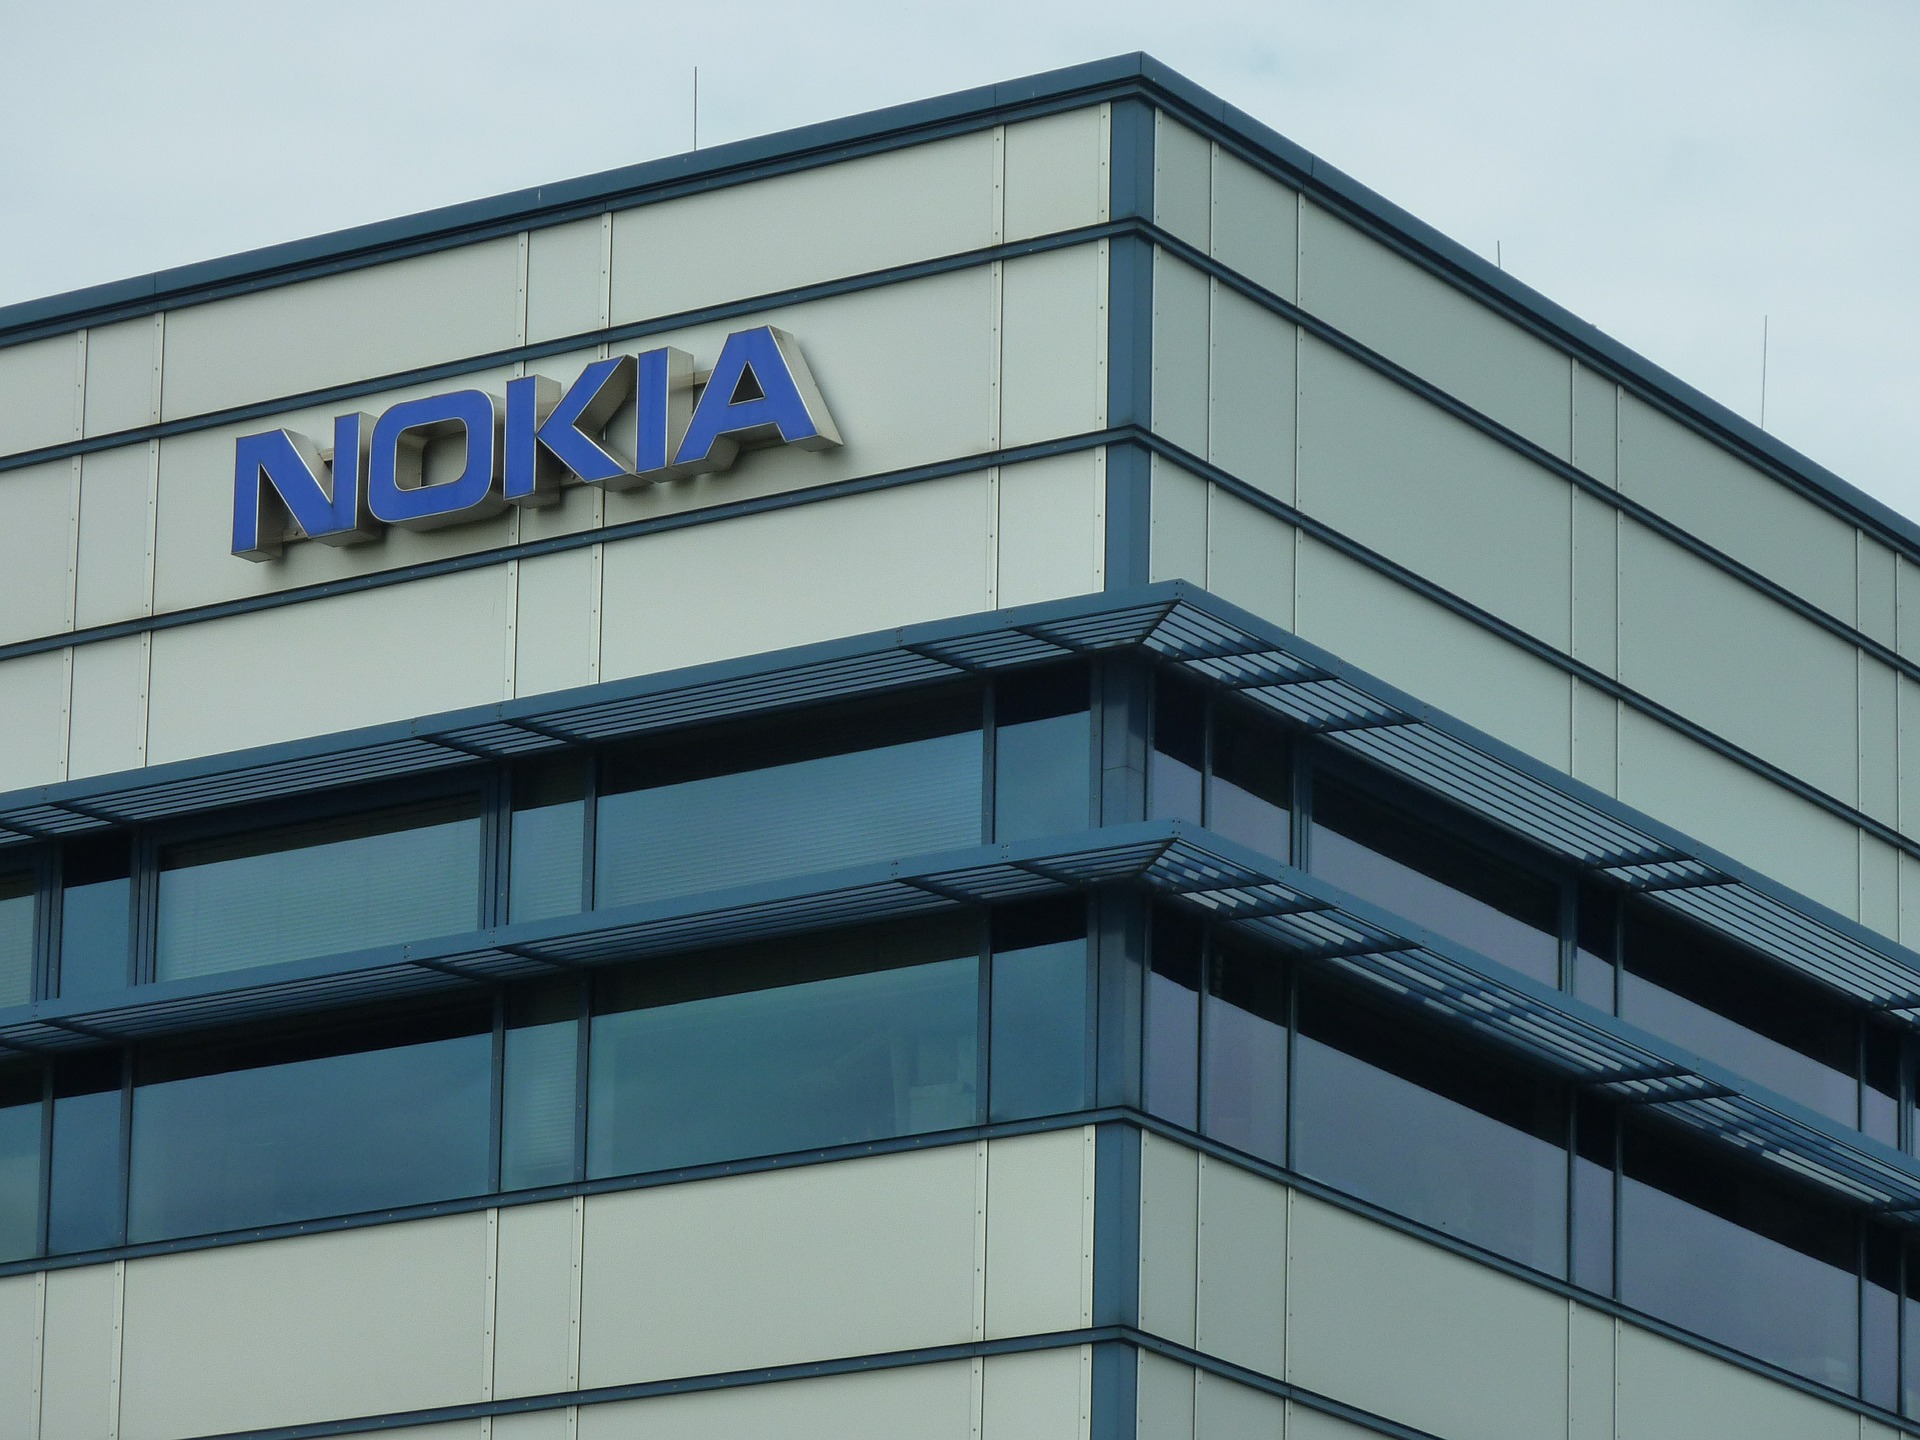 The Best Nokia Smartphone In The Current Market